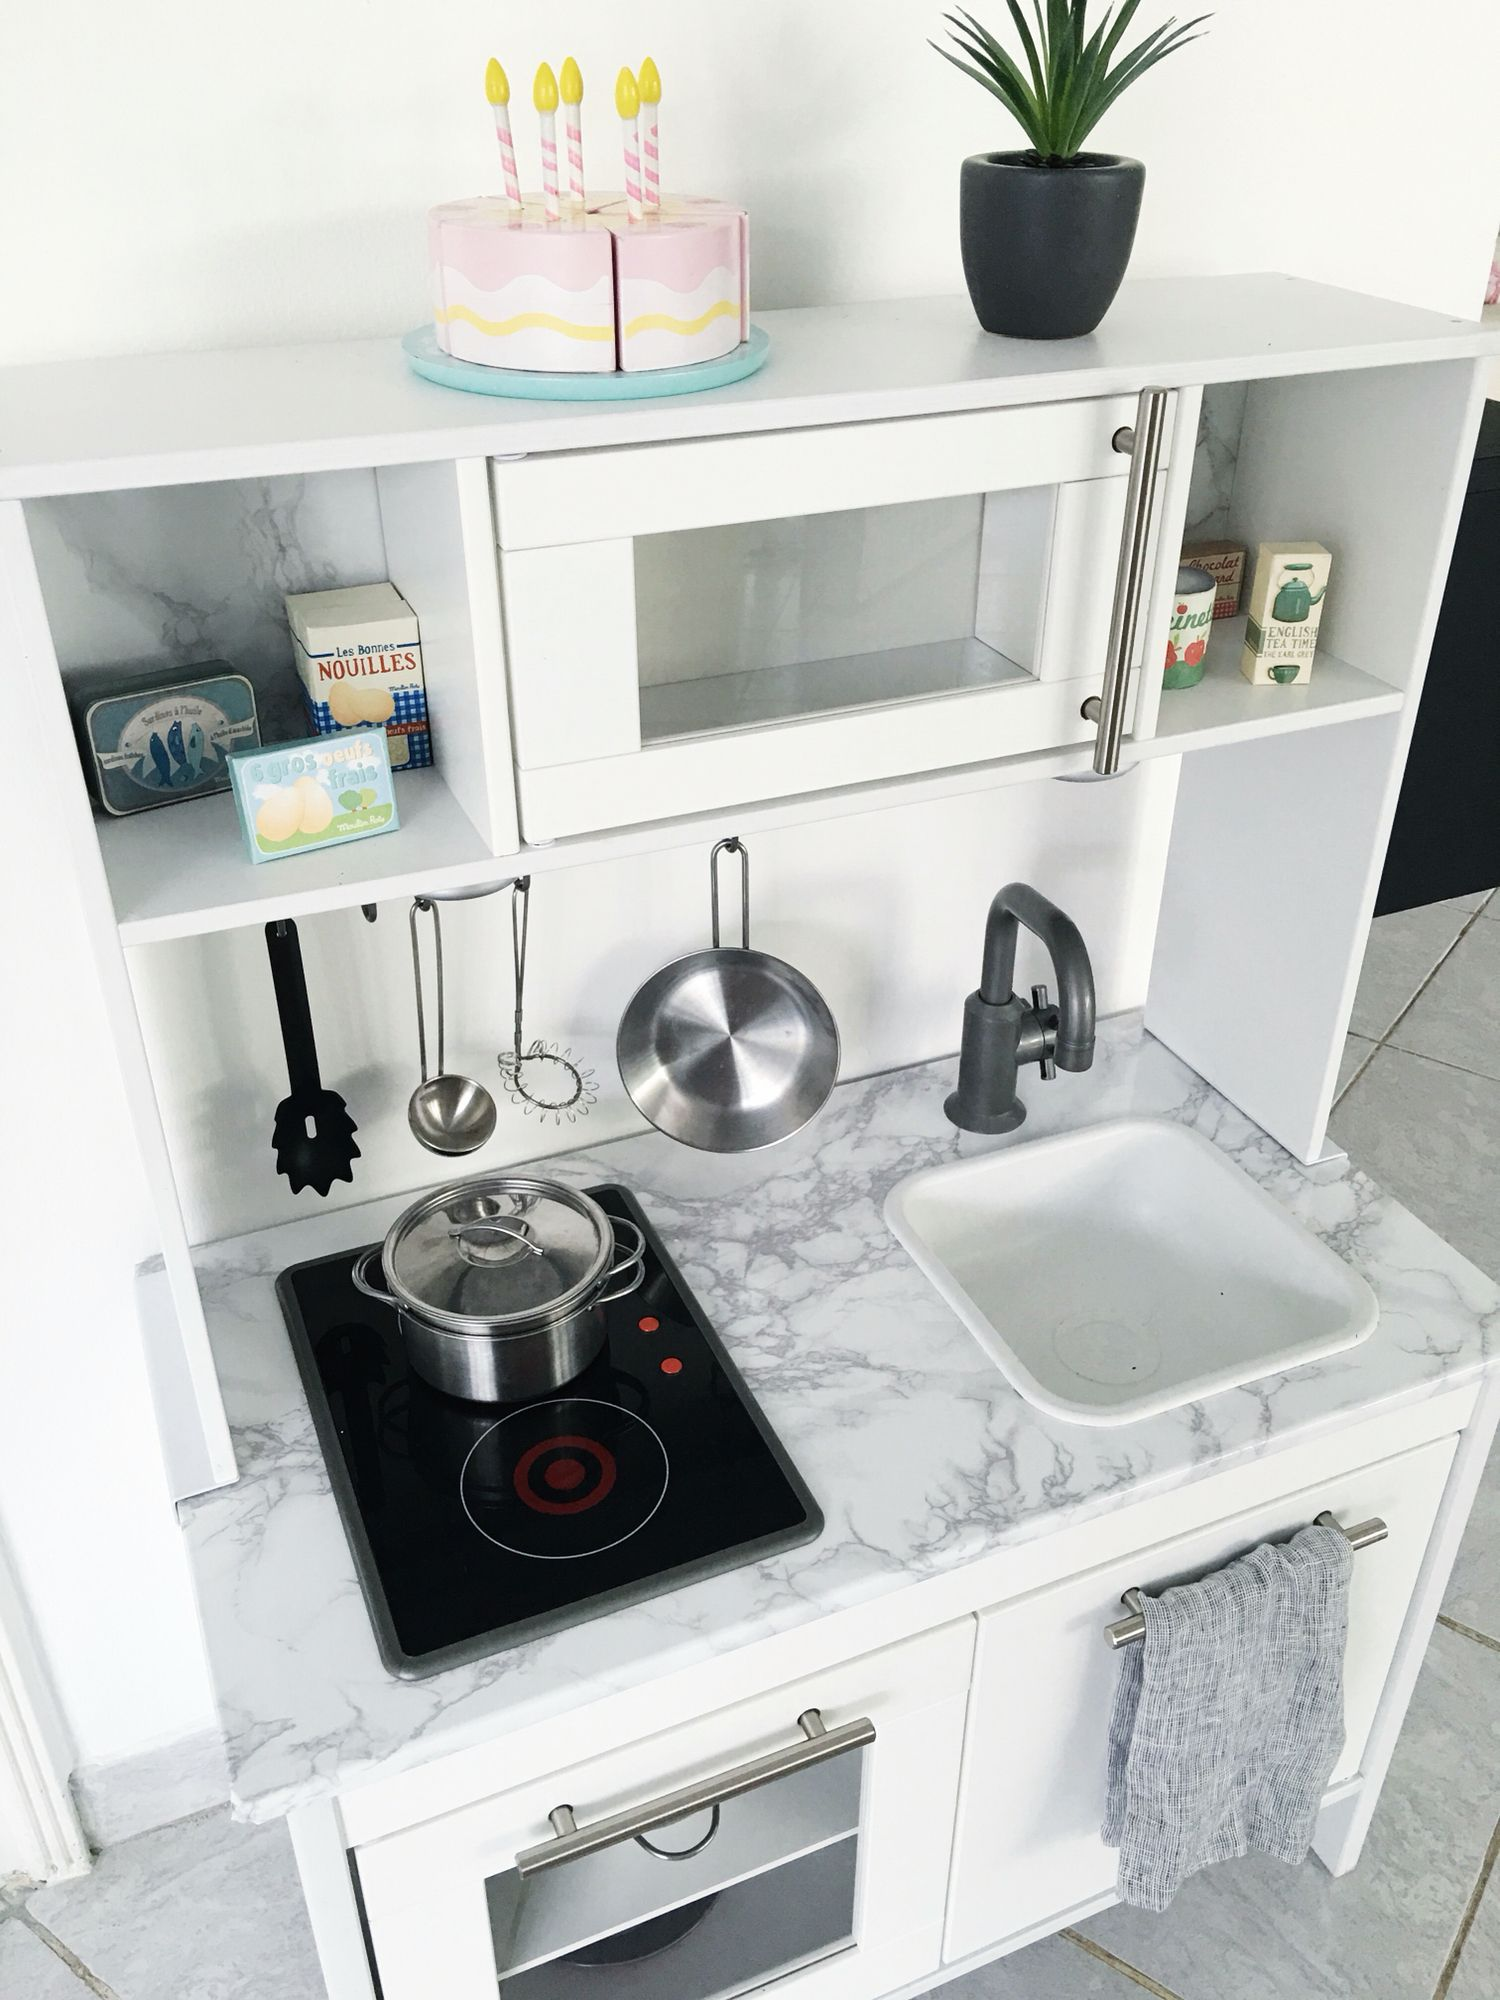 ikea hack duktig kitchen kids ikea duktig kitchen t h i n g s f o r k i d s pinterest. Black Bedroom Furniture Sets. Home Design Ideas